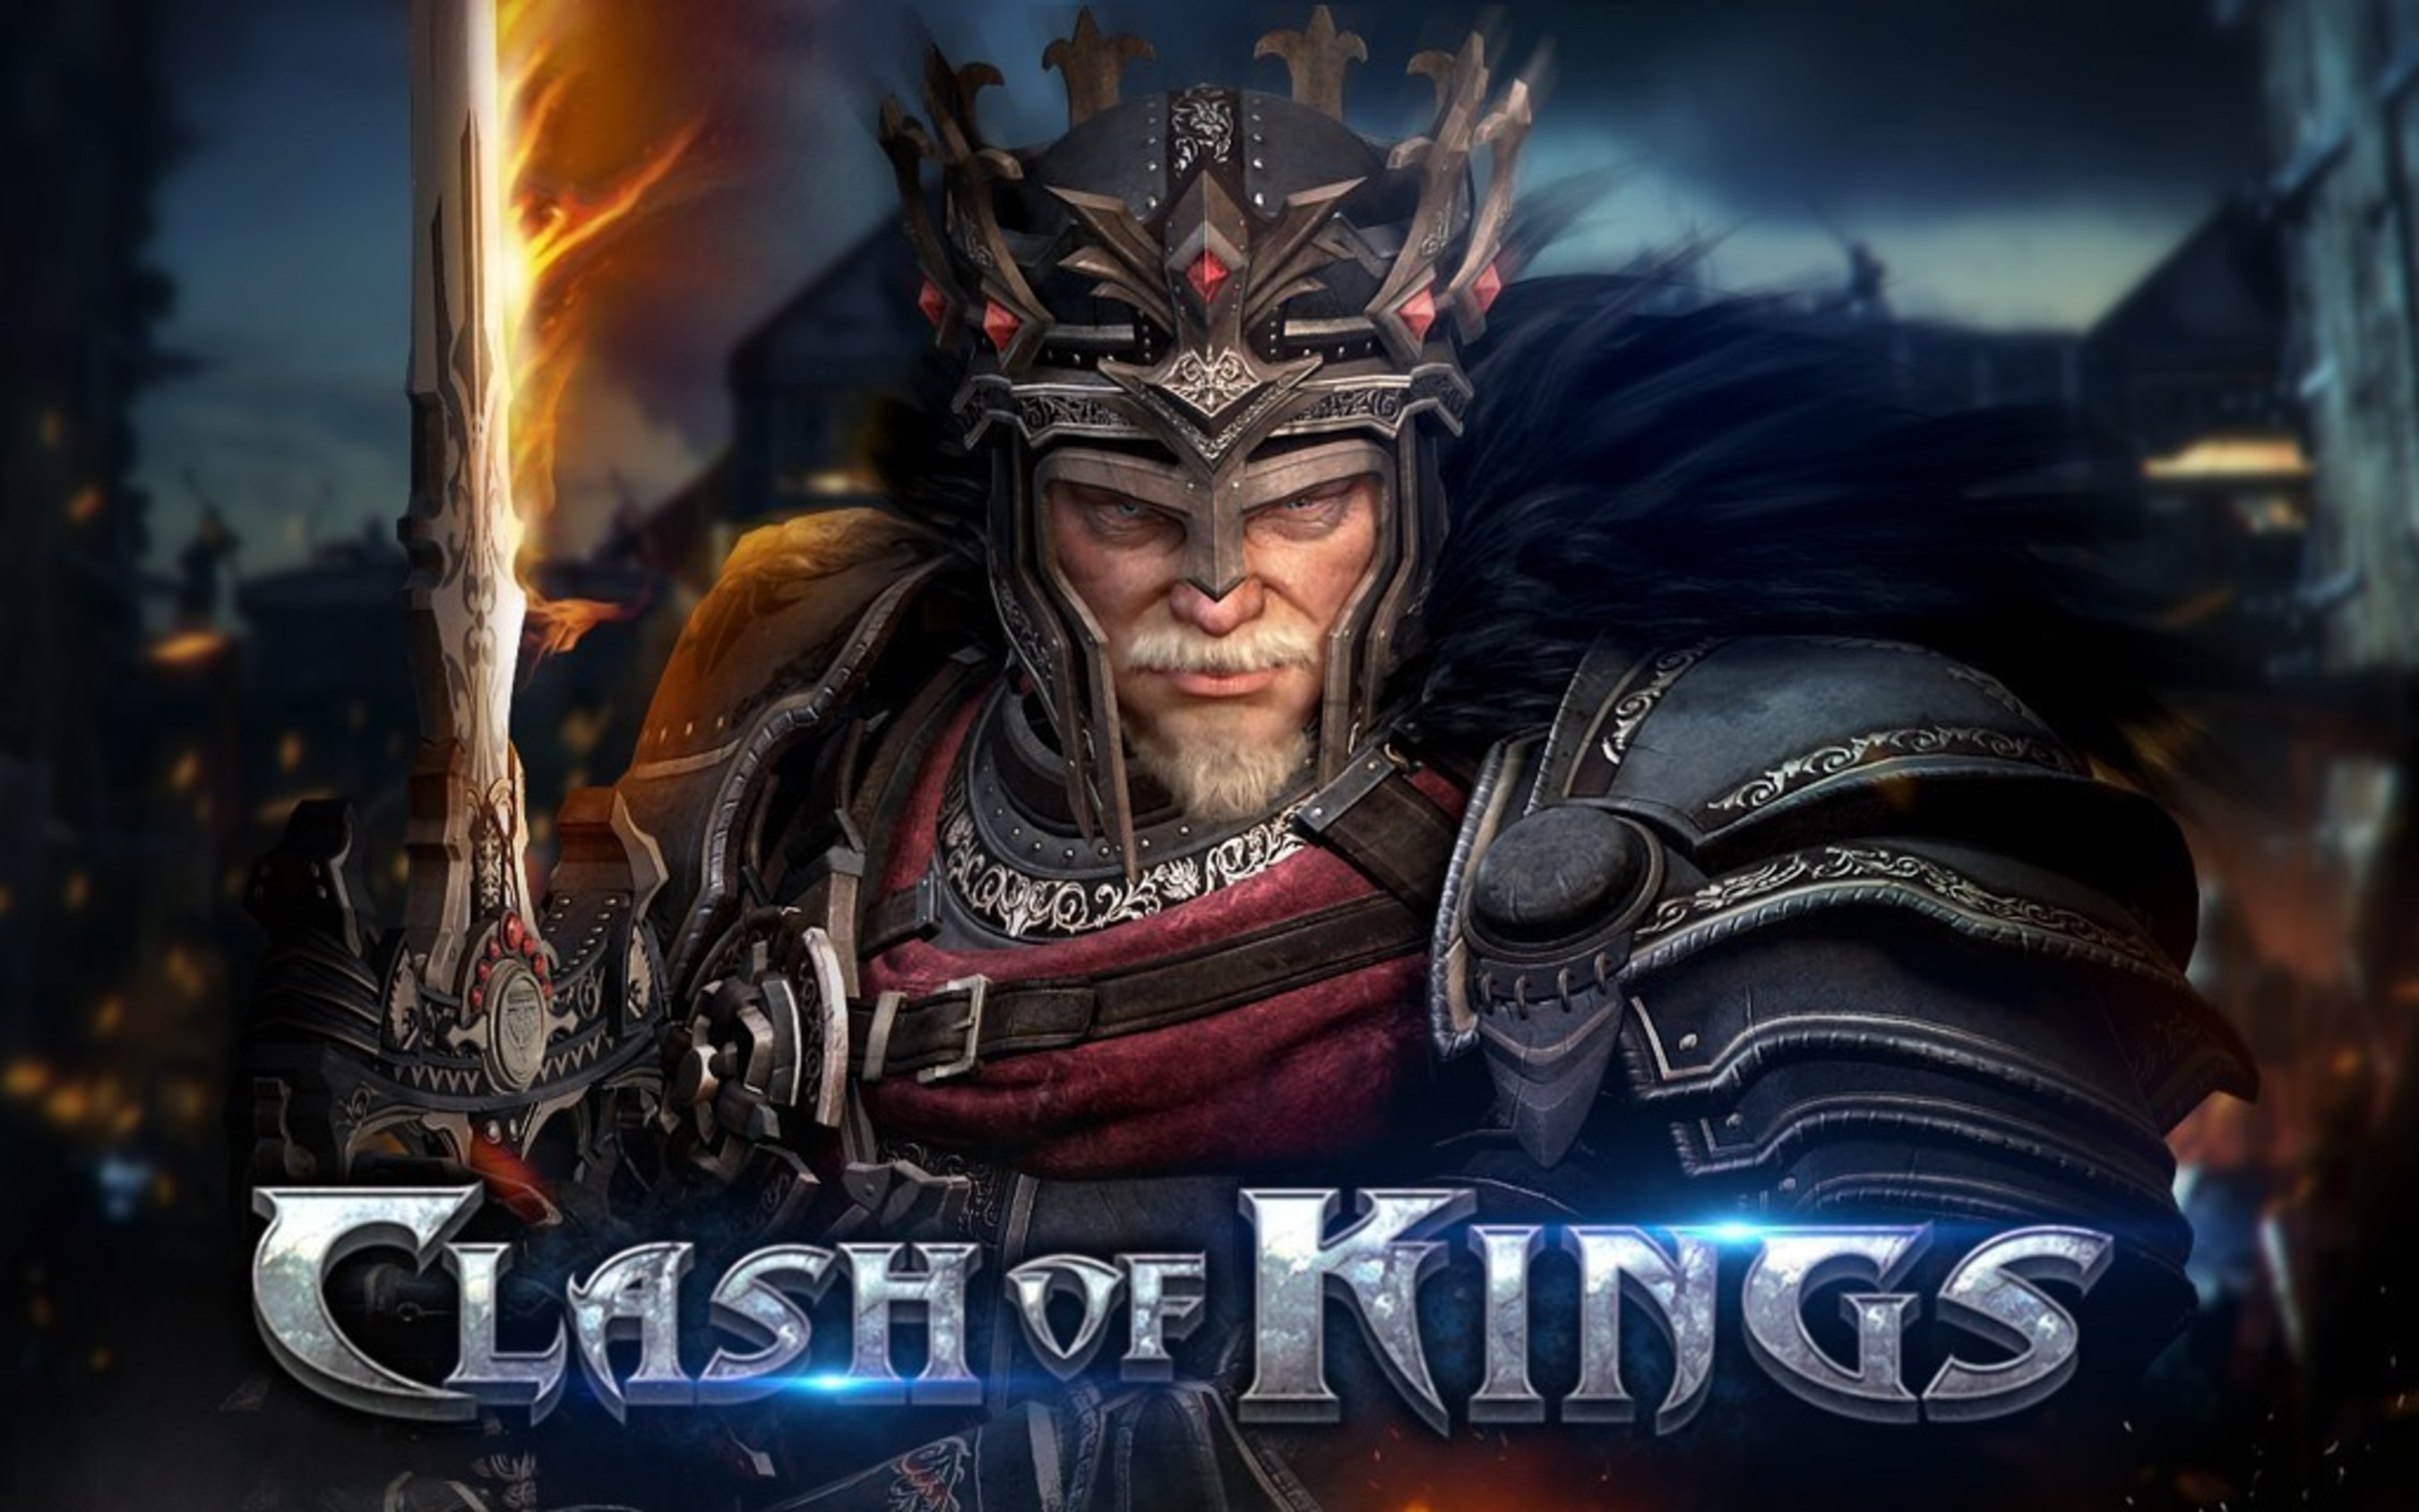 Clash of Kings Jumped Into Top 5 Games By Revenue Worldwide In July 2015